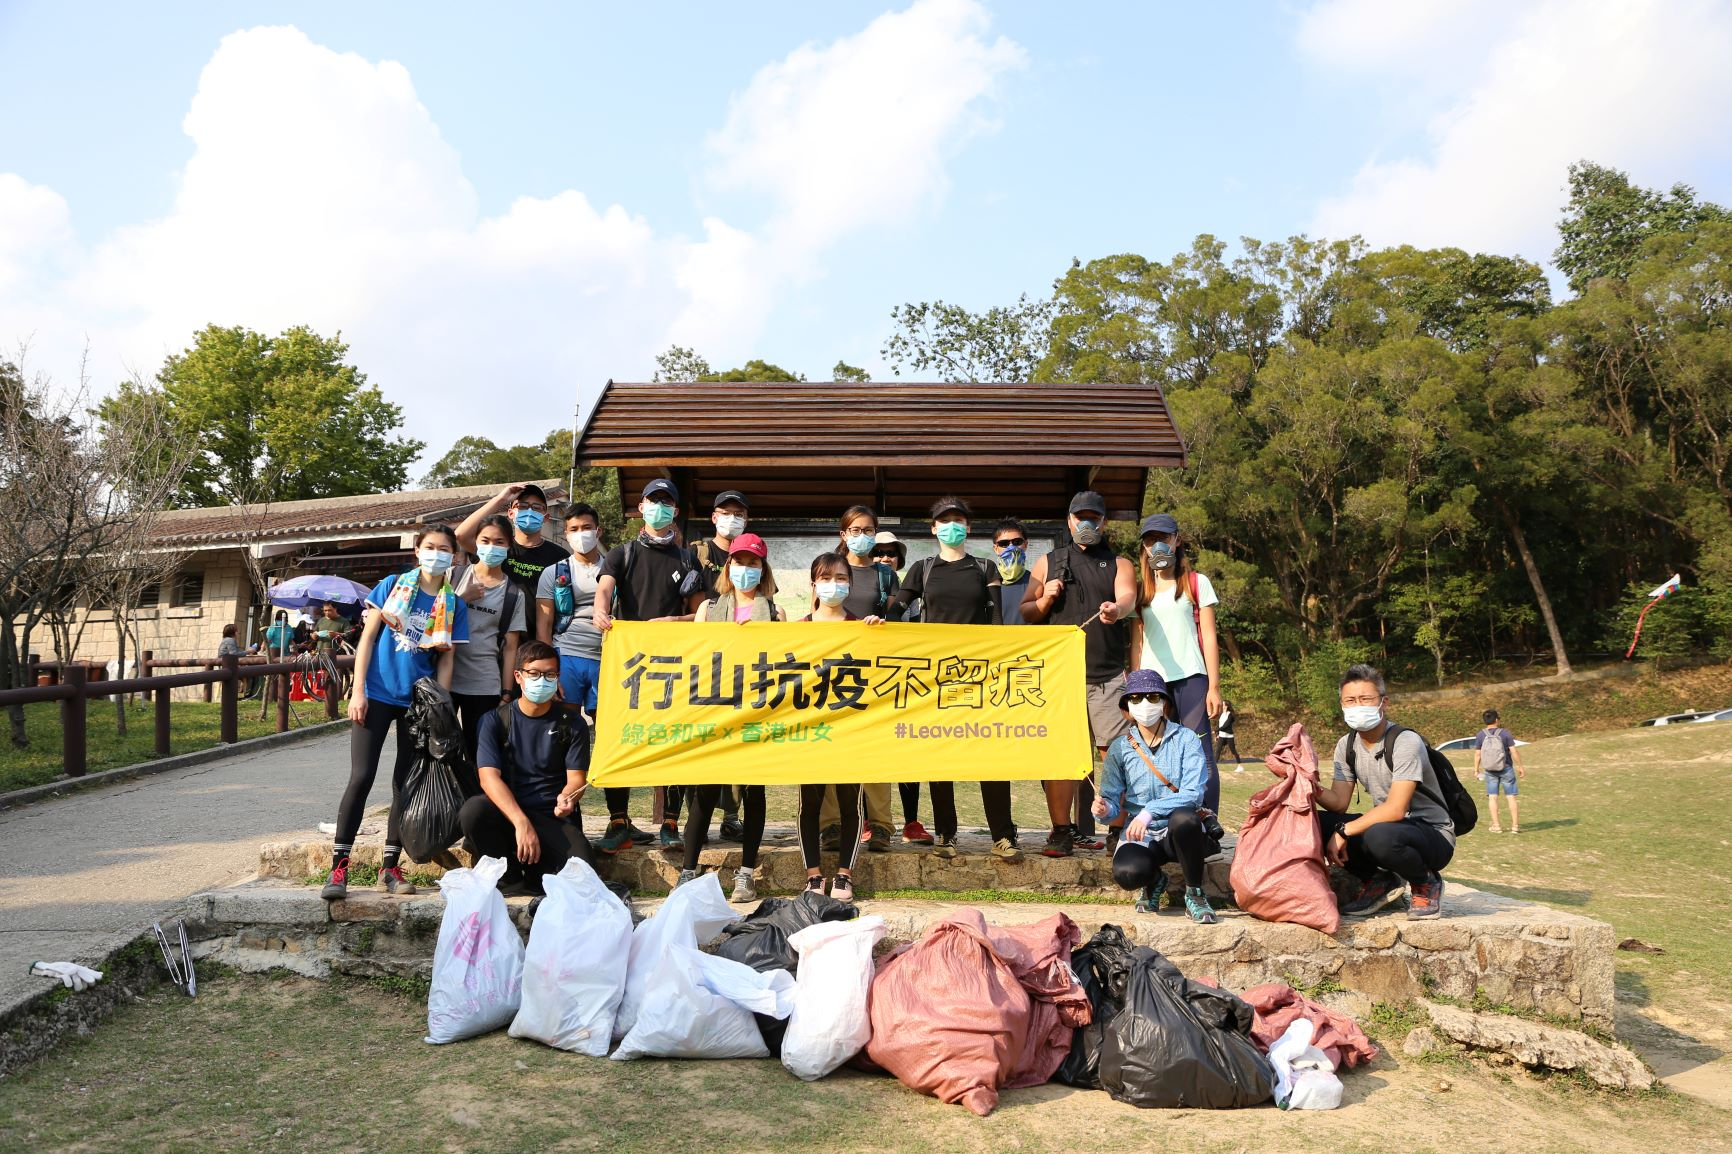 Hike for Health, Leave No Trace –  Greenpeace & hikers clean up Tai Mo Shan together